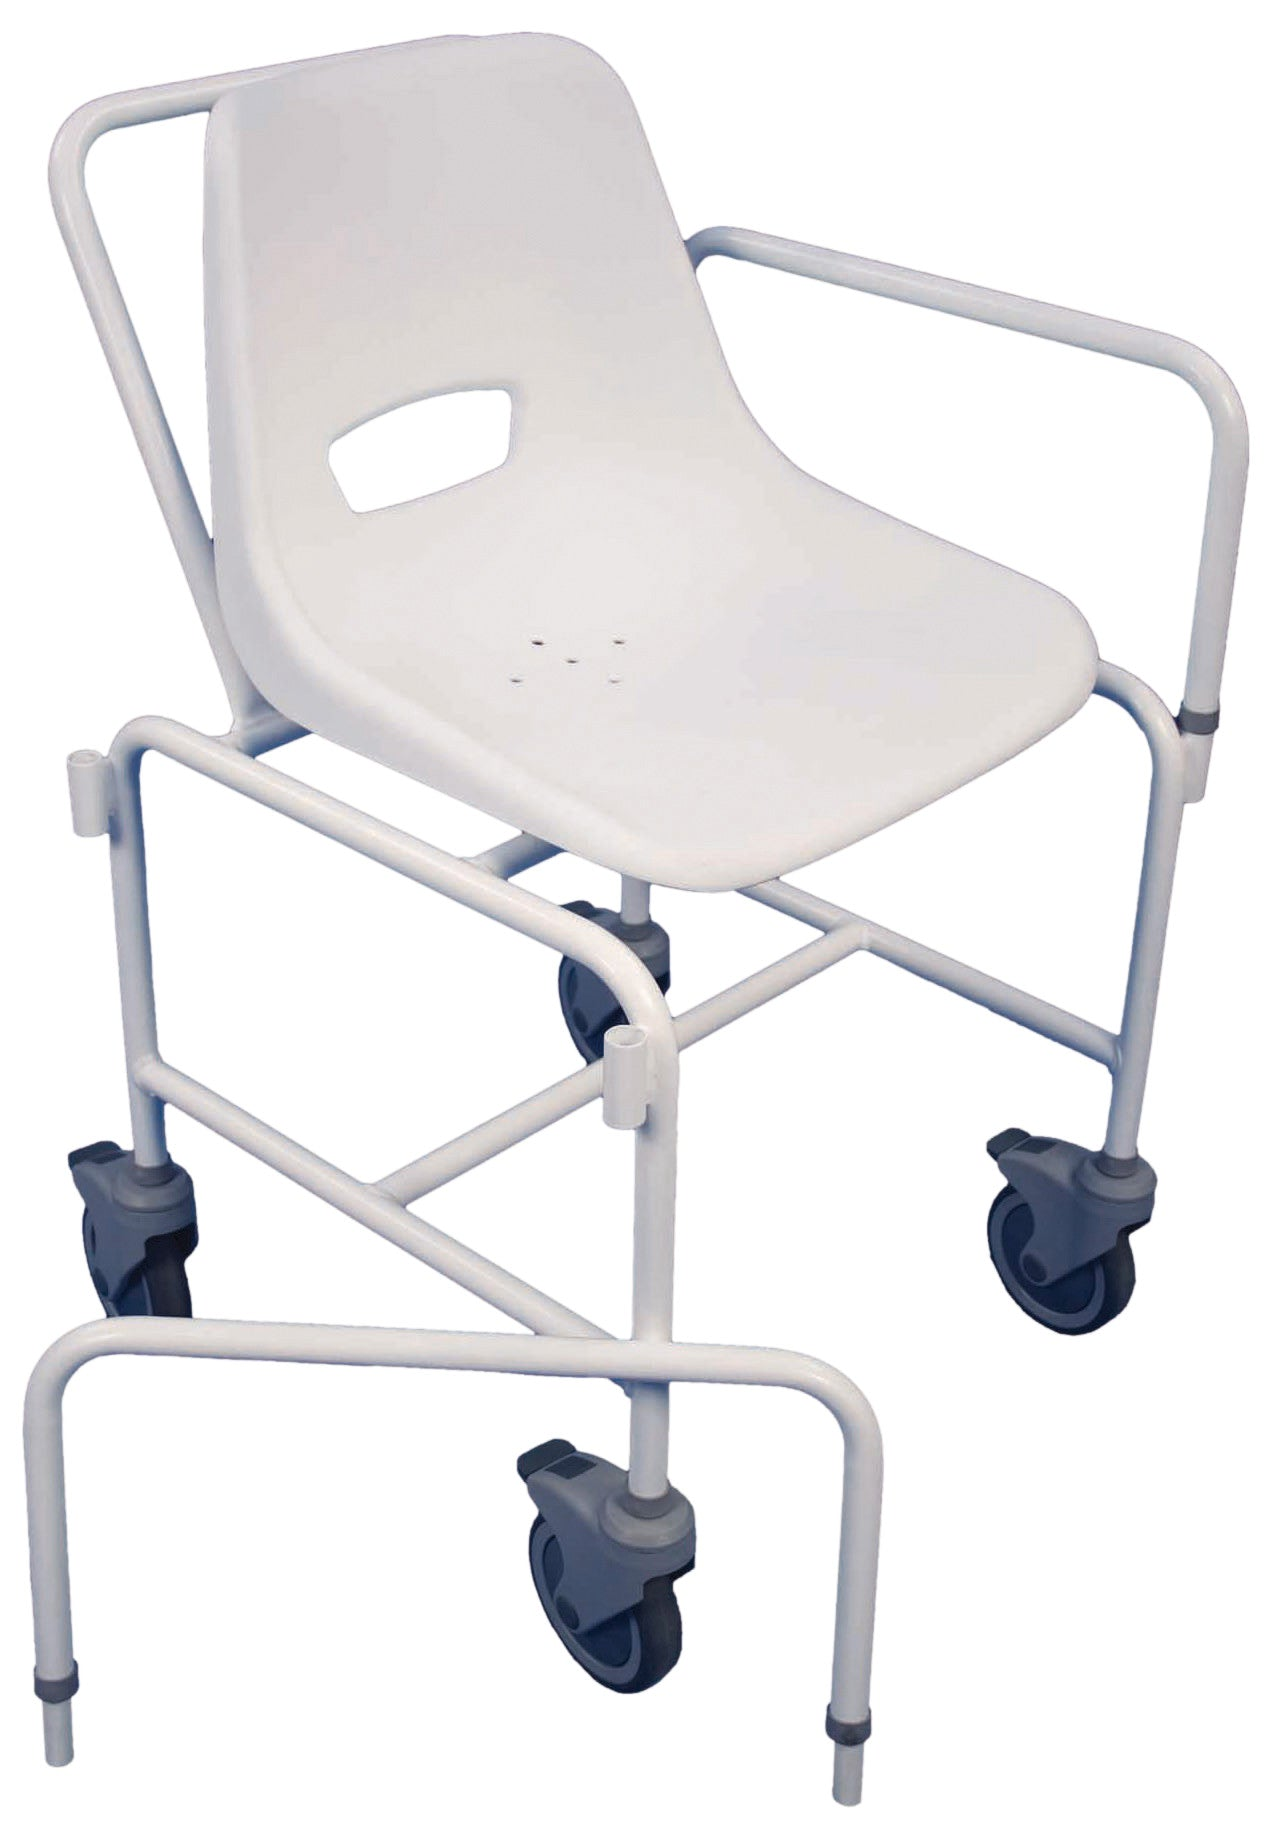 Aidapt Charing Attendant Propelled Shower Chair